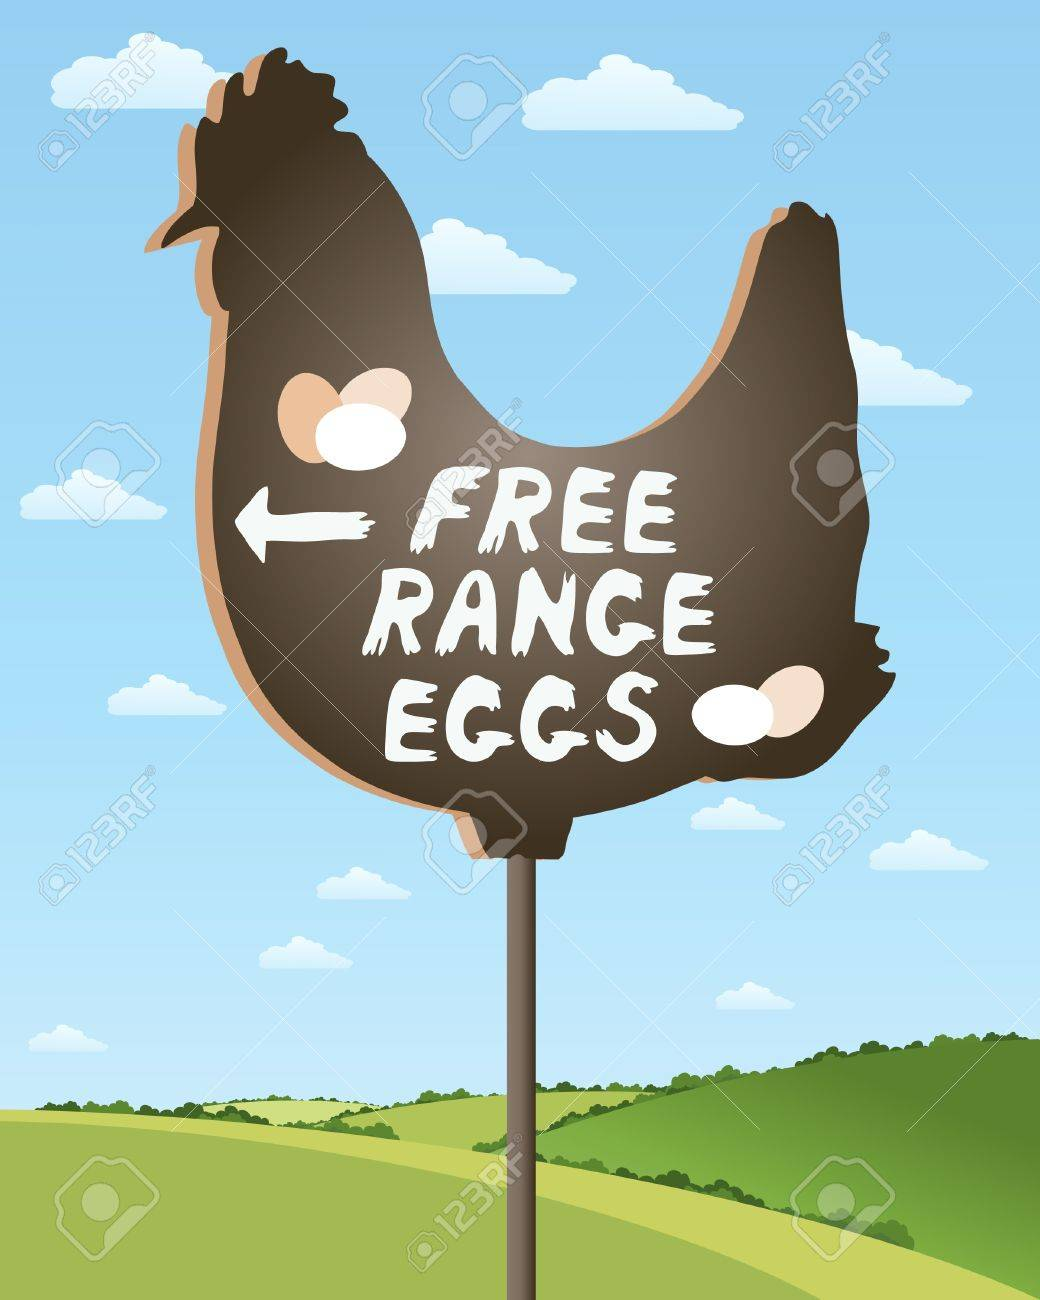 an illustration of a home made sign advertising free range eggs in beautiful countryside scenery under a summer sky Stock Vector - 17621926